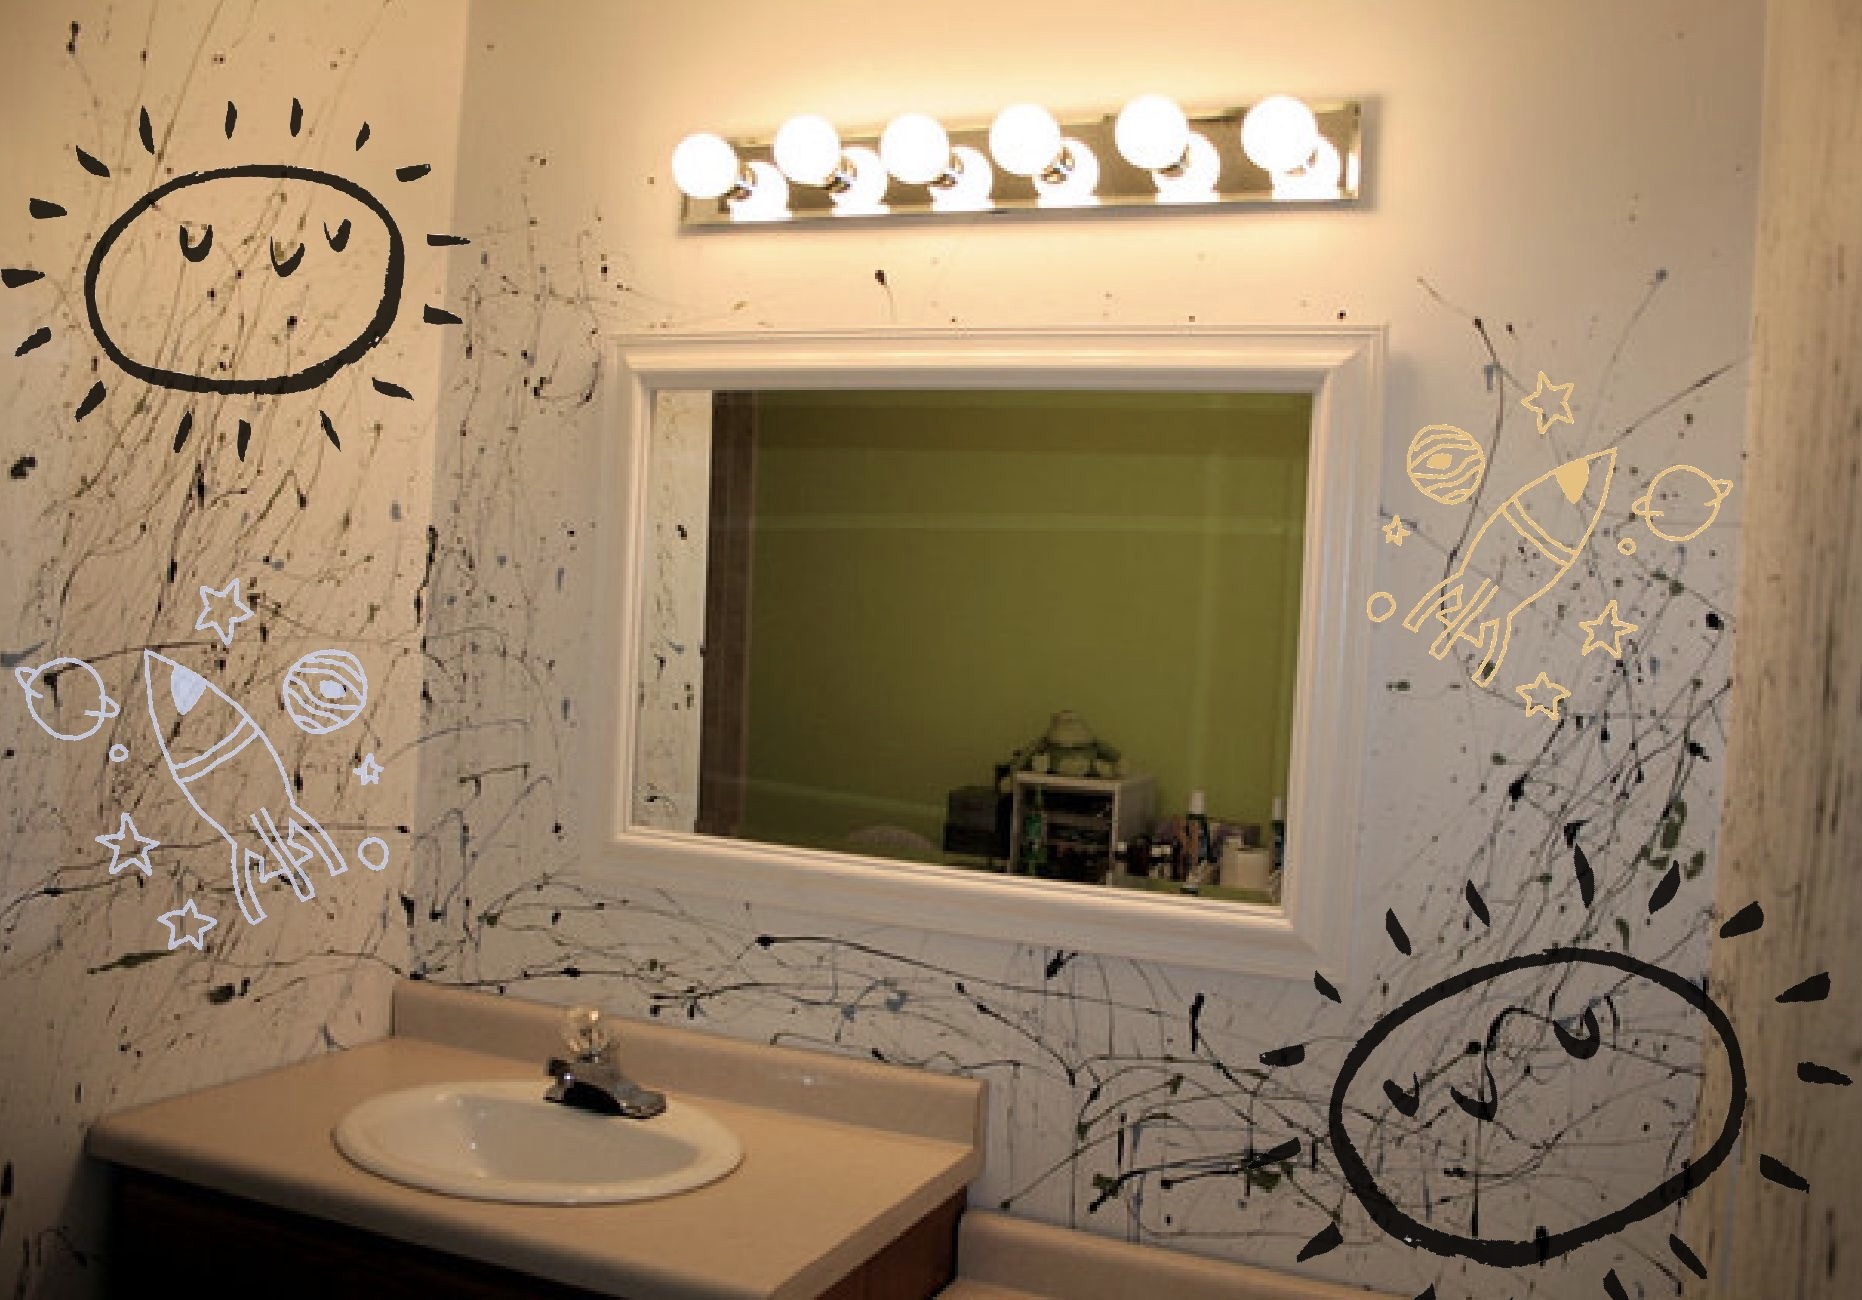 Digital Nocturne Hailed by Studio Art Majors, Criticized by Parents with Newly Fingerpainted Bathrooms